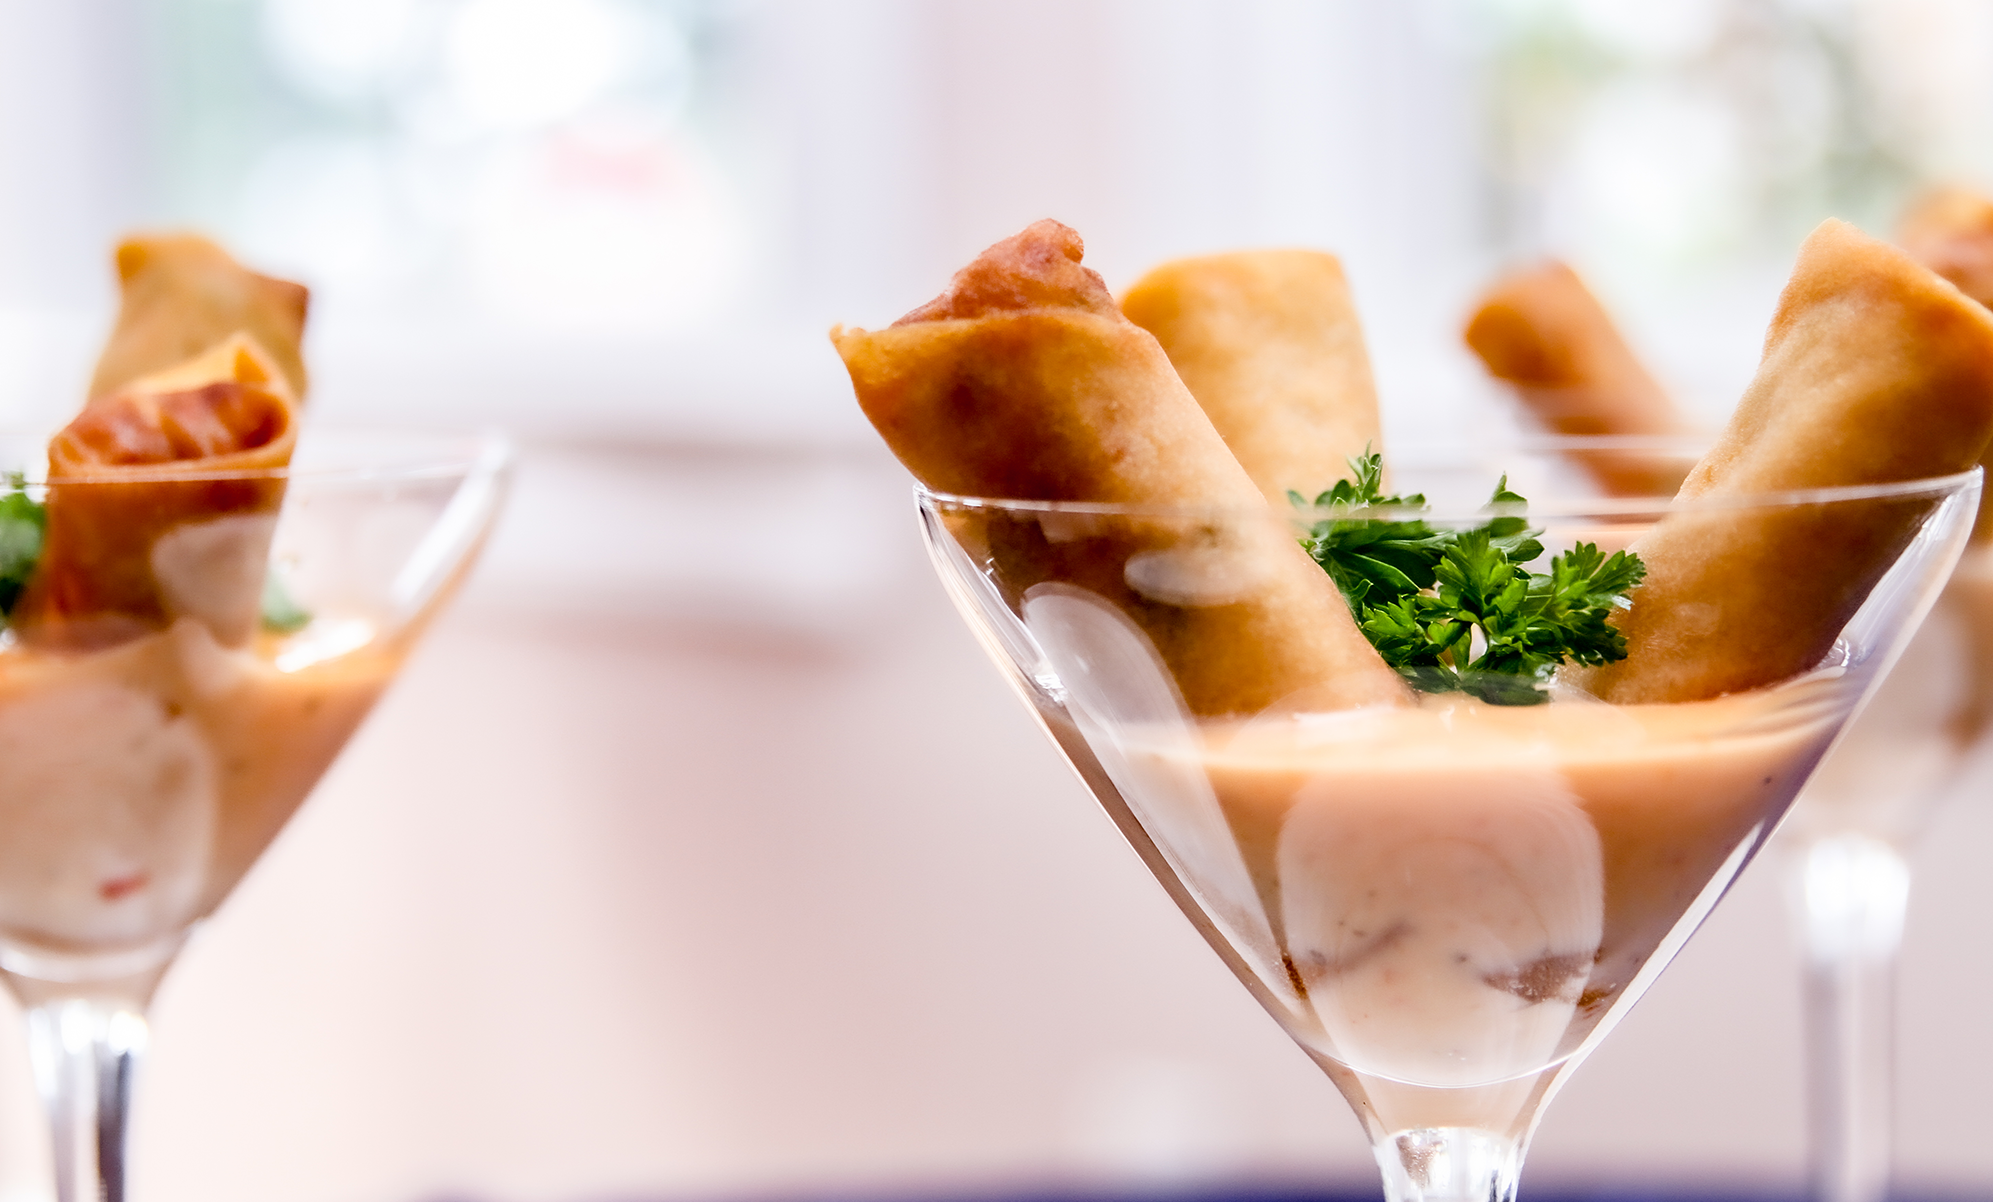 spring rolls in sauce inside a martini glass